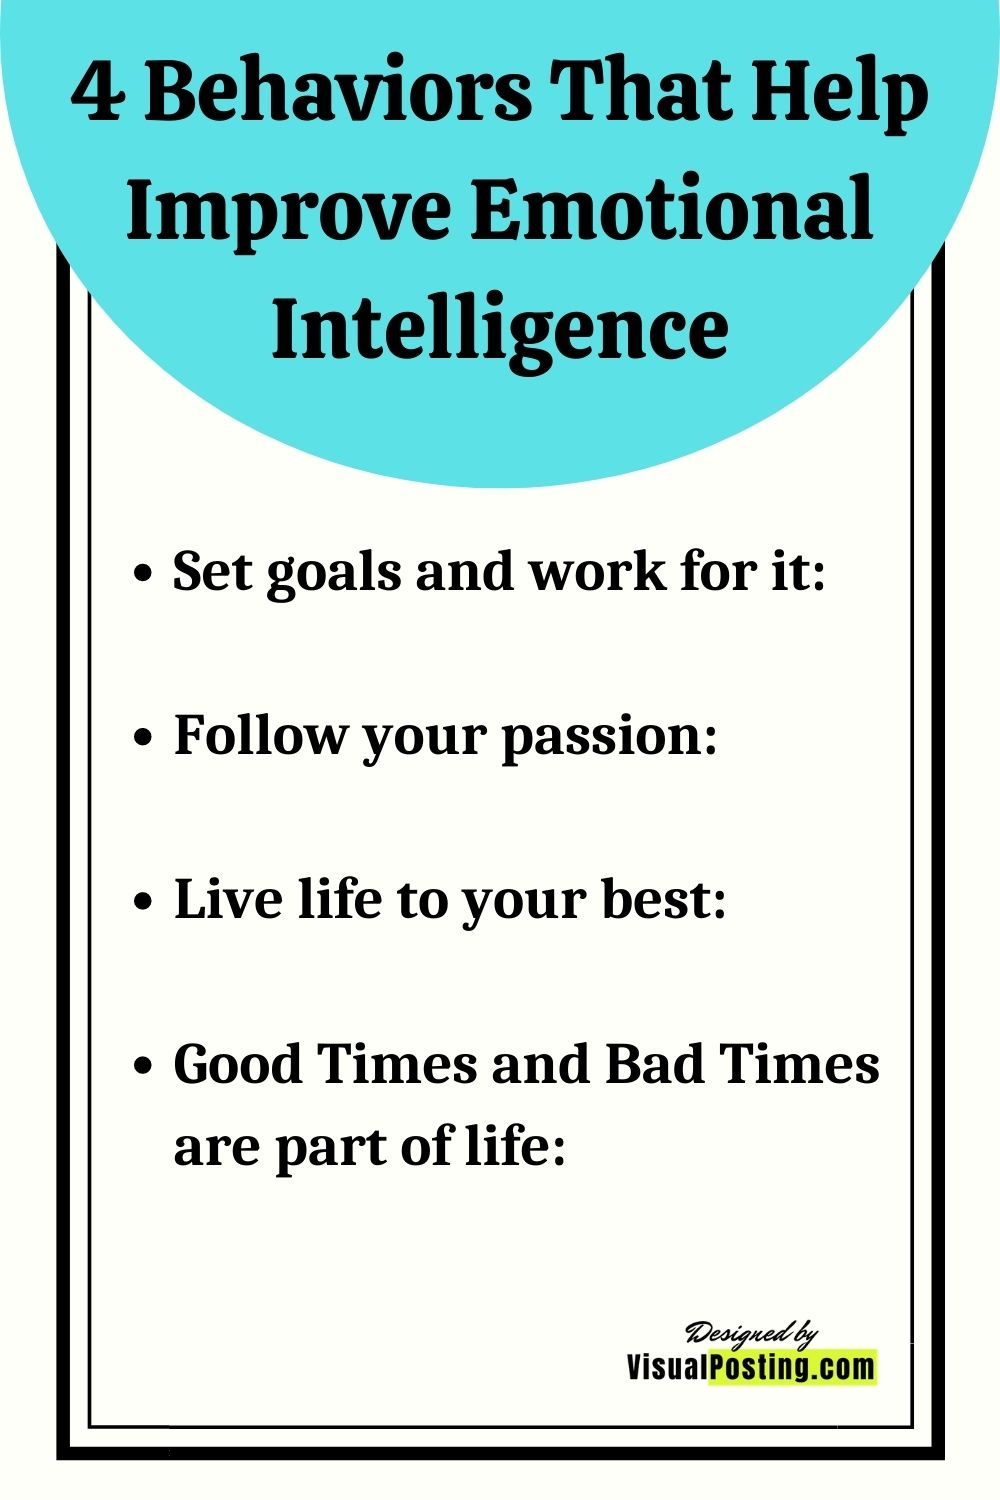 4 Behaviors That Help Improve Emotional Intelligence.jpg